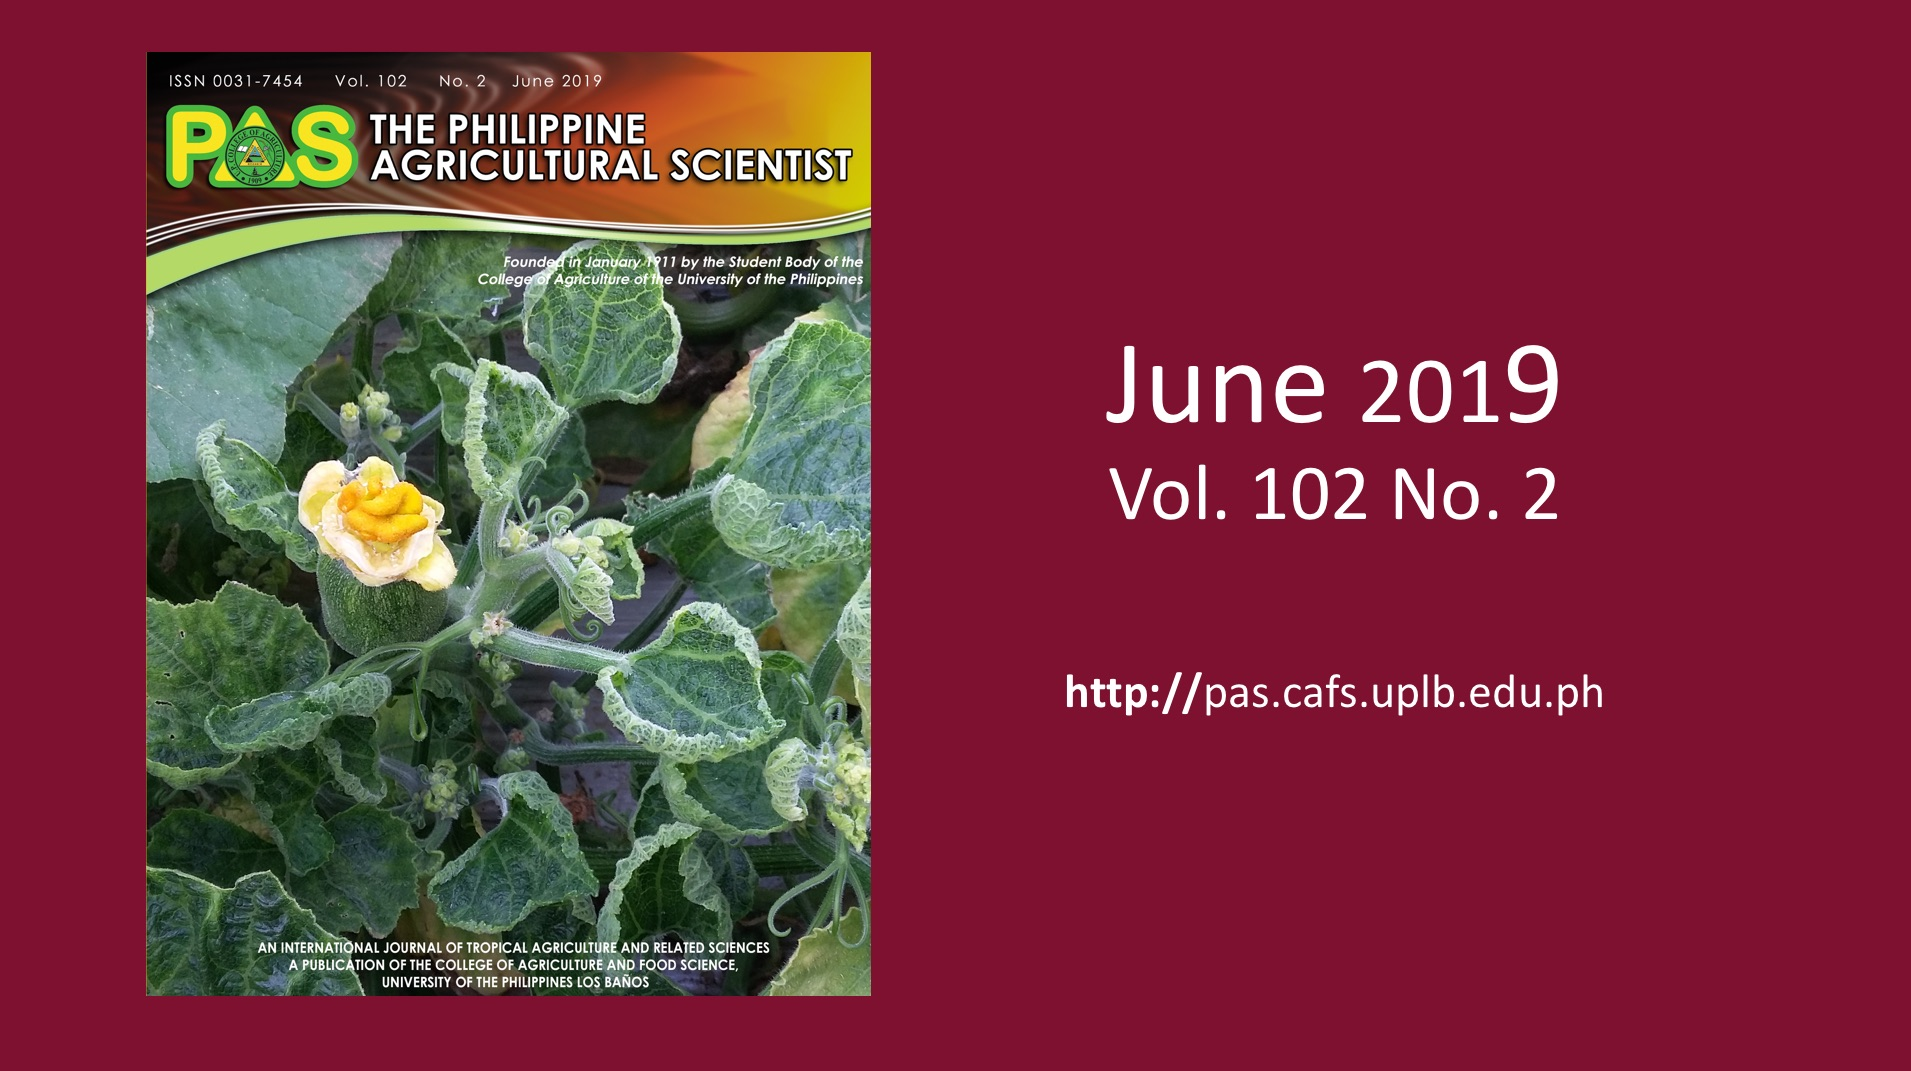 The Philippine Agricultural Scientist – FORMERLY THE